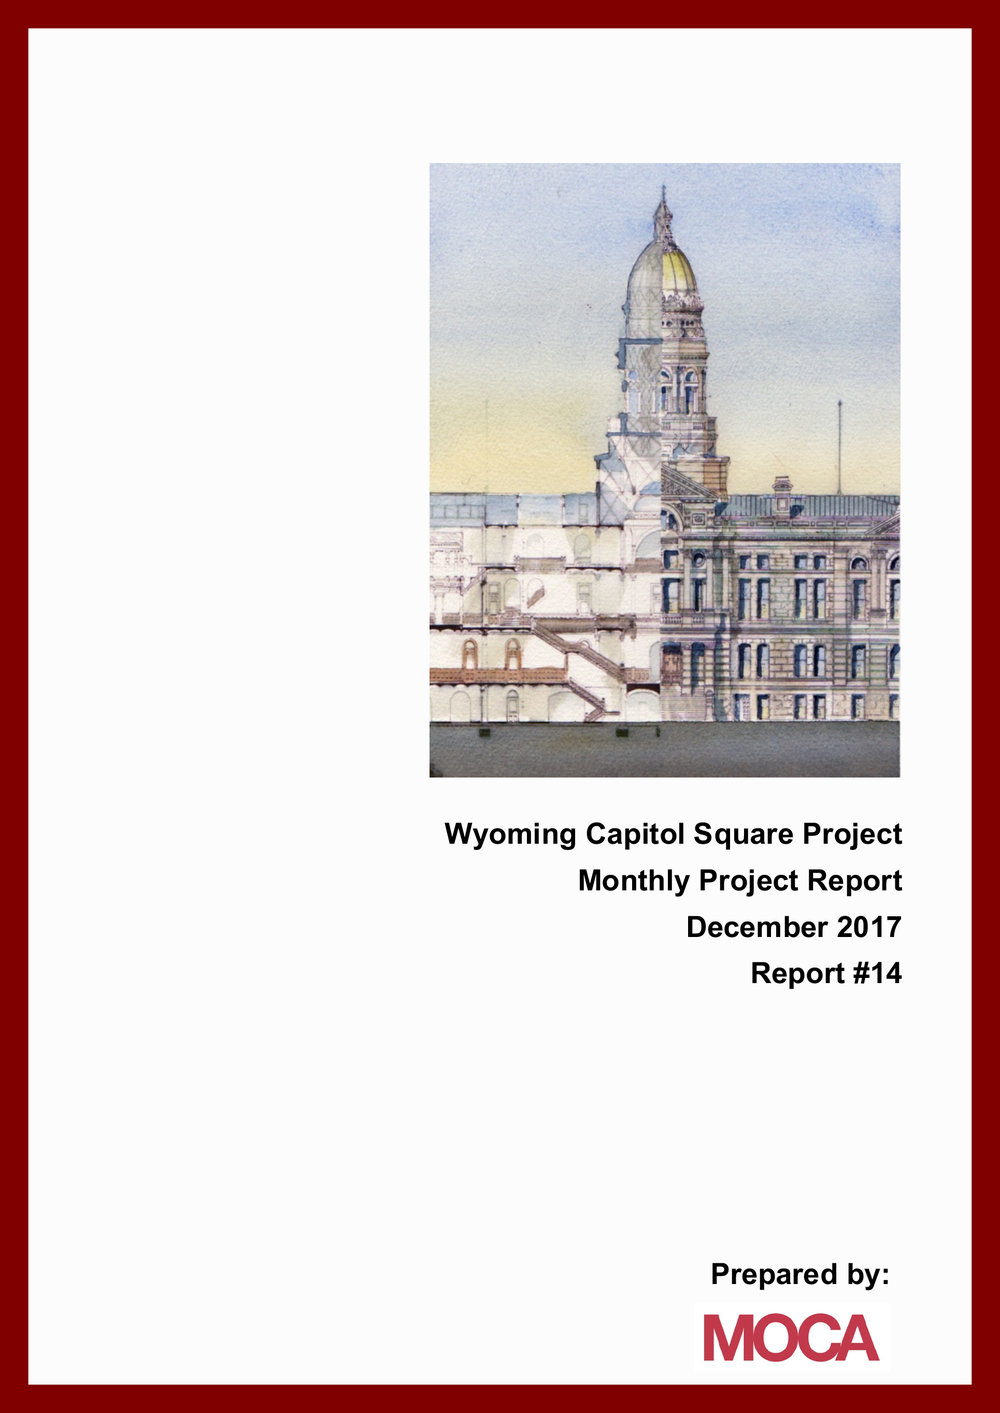 2017-1231-WyomingCapitolMonthlyReport-Final-14.jpg